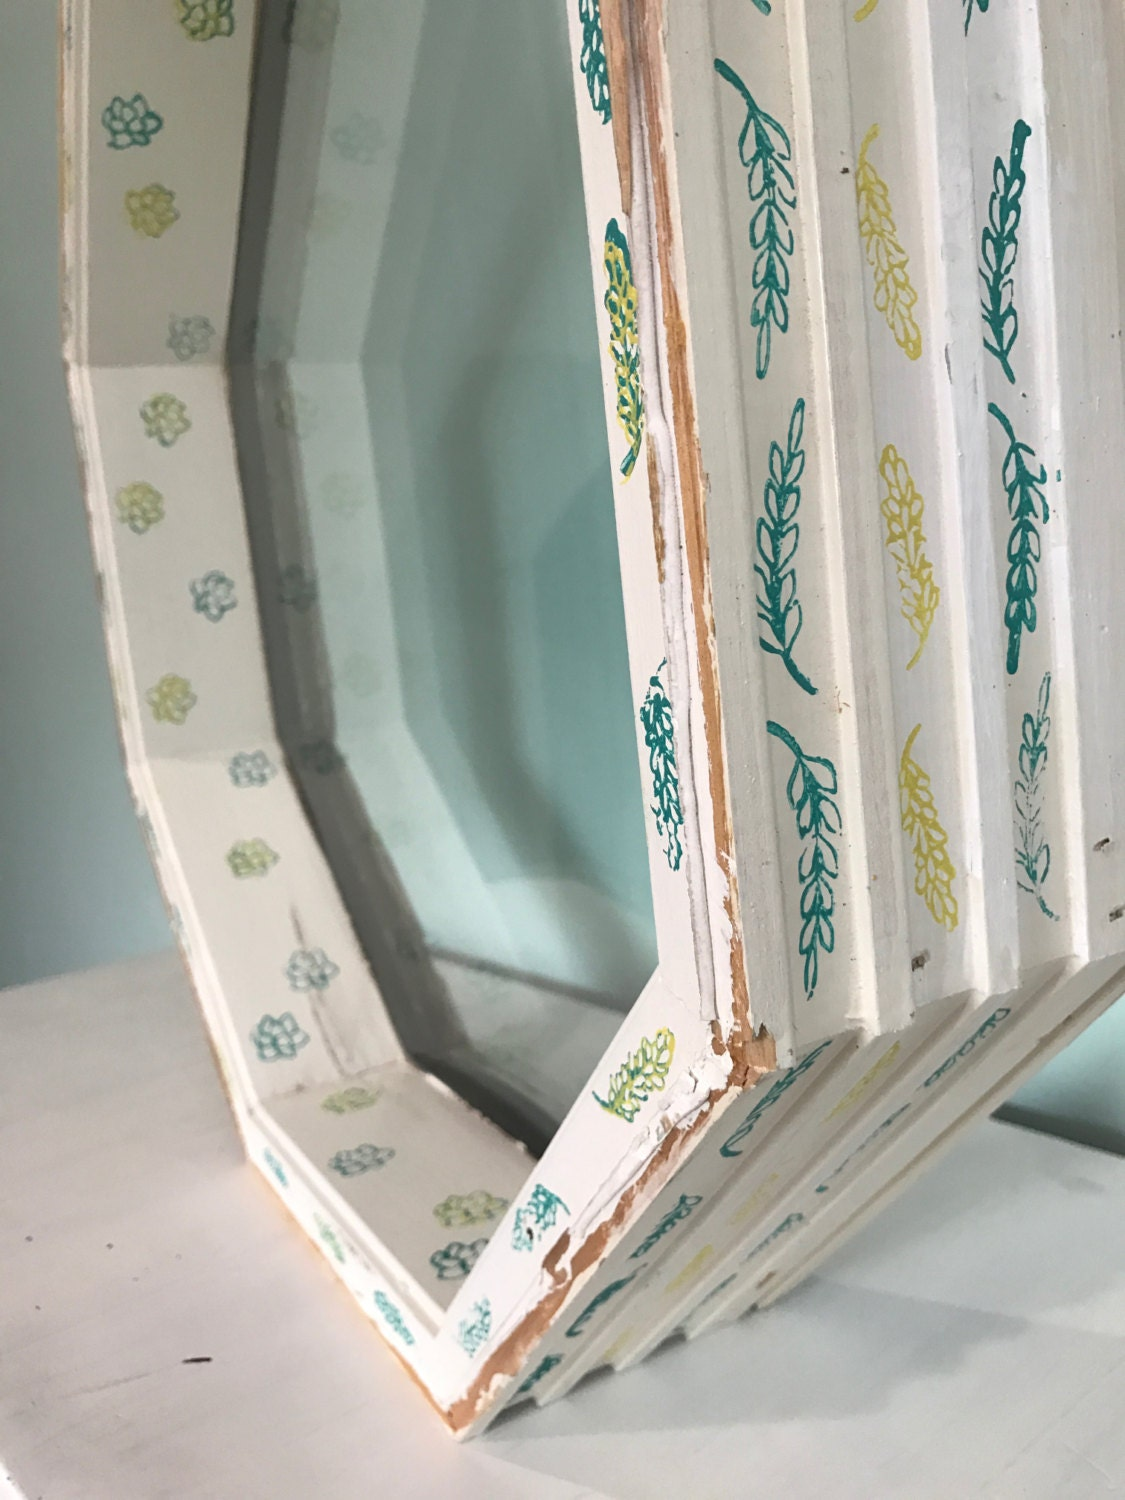 Decorative Window Pane / Frame / Vintage / Old / Home Decor / Rustic / Bohemian / Nursery / Wall Art / Wedding / Eco / Salvaged / Upcycled